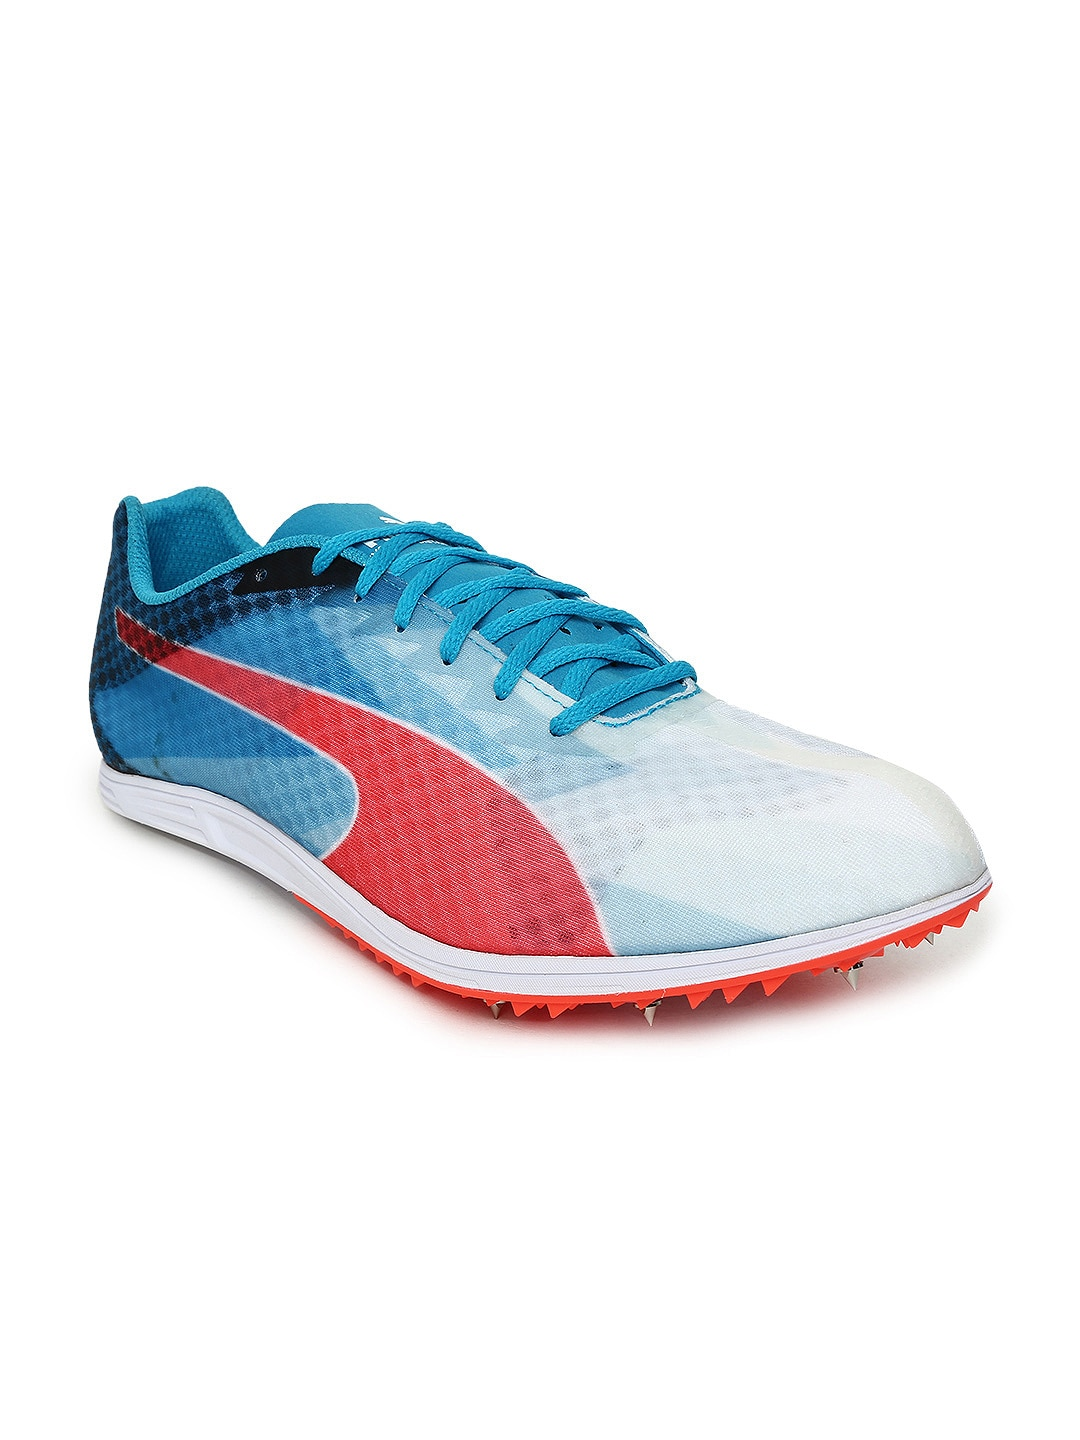 e6cc80e8421 Buy Puma Men Blue EvoSPEED Sprint V6 Running Shoes - Sports Shoes ...